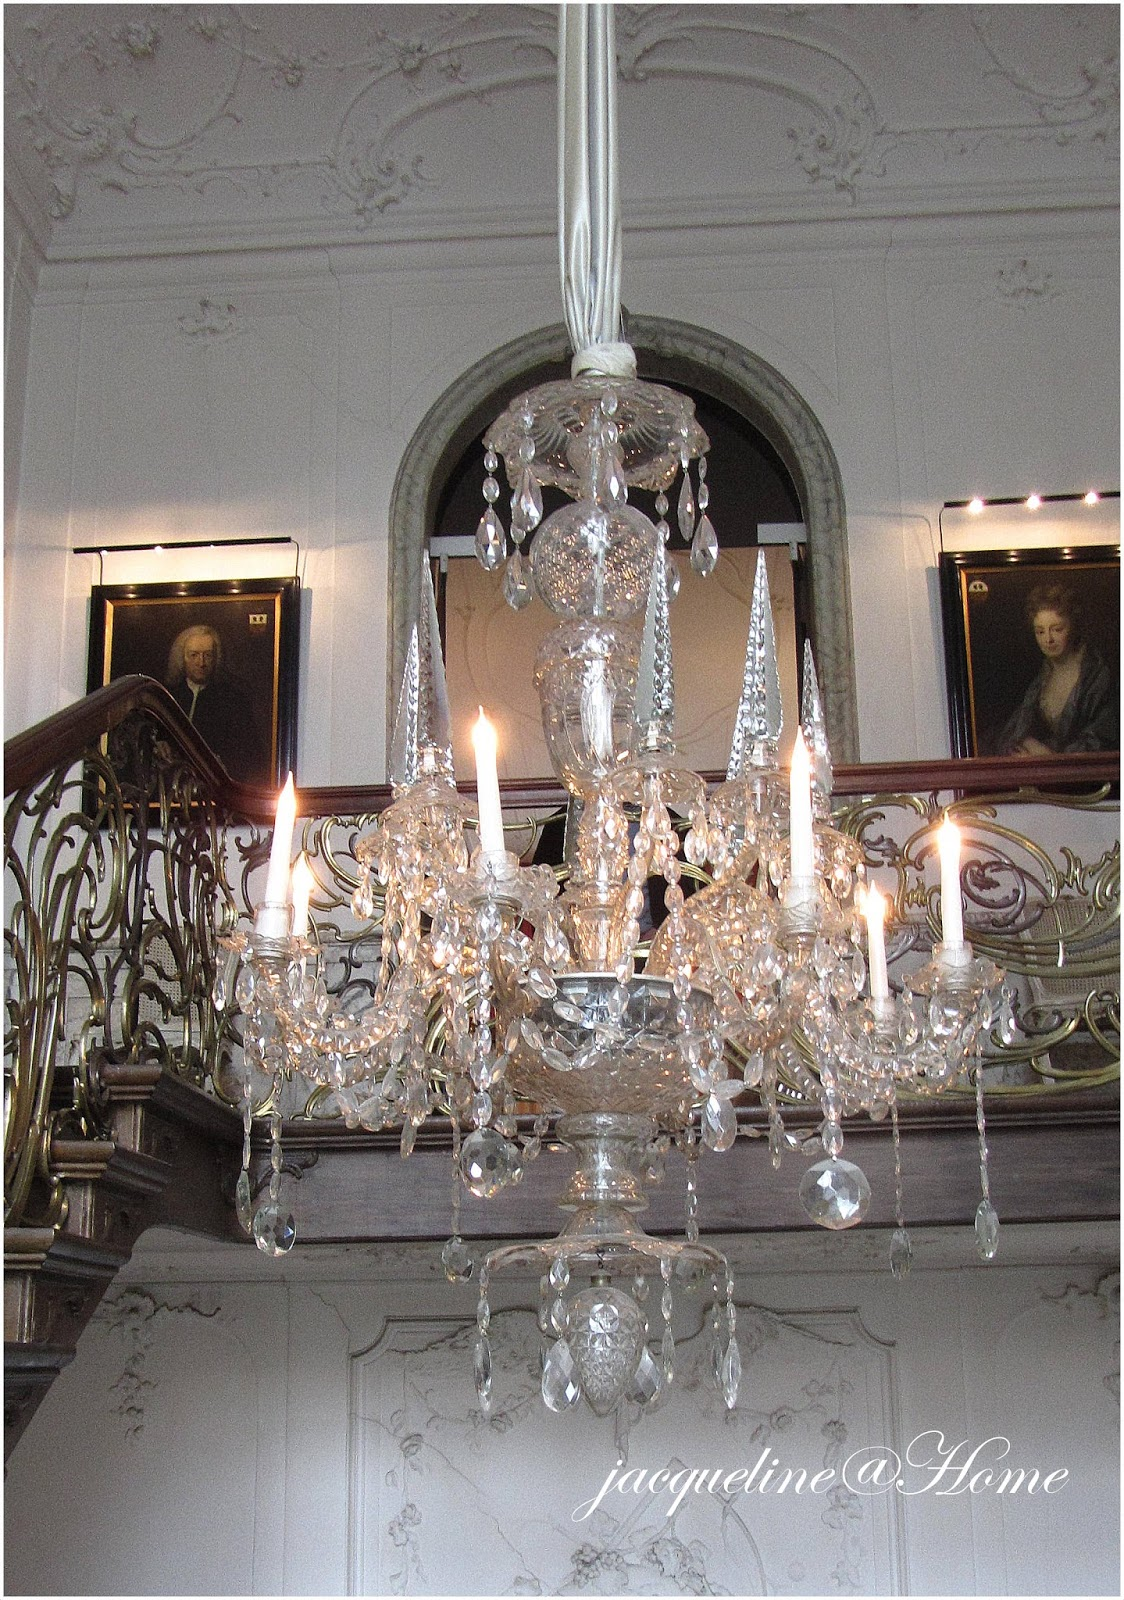 Chandelier In A House Amsterdam